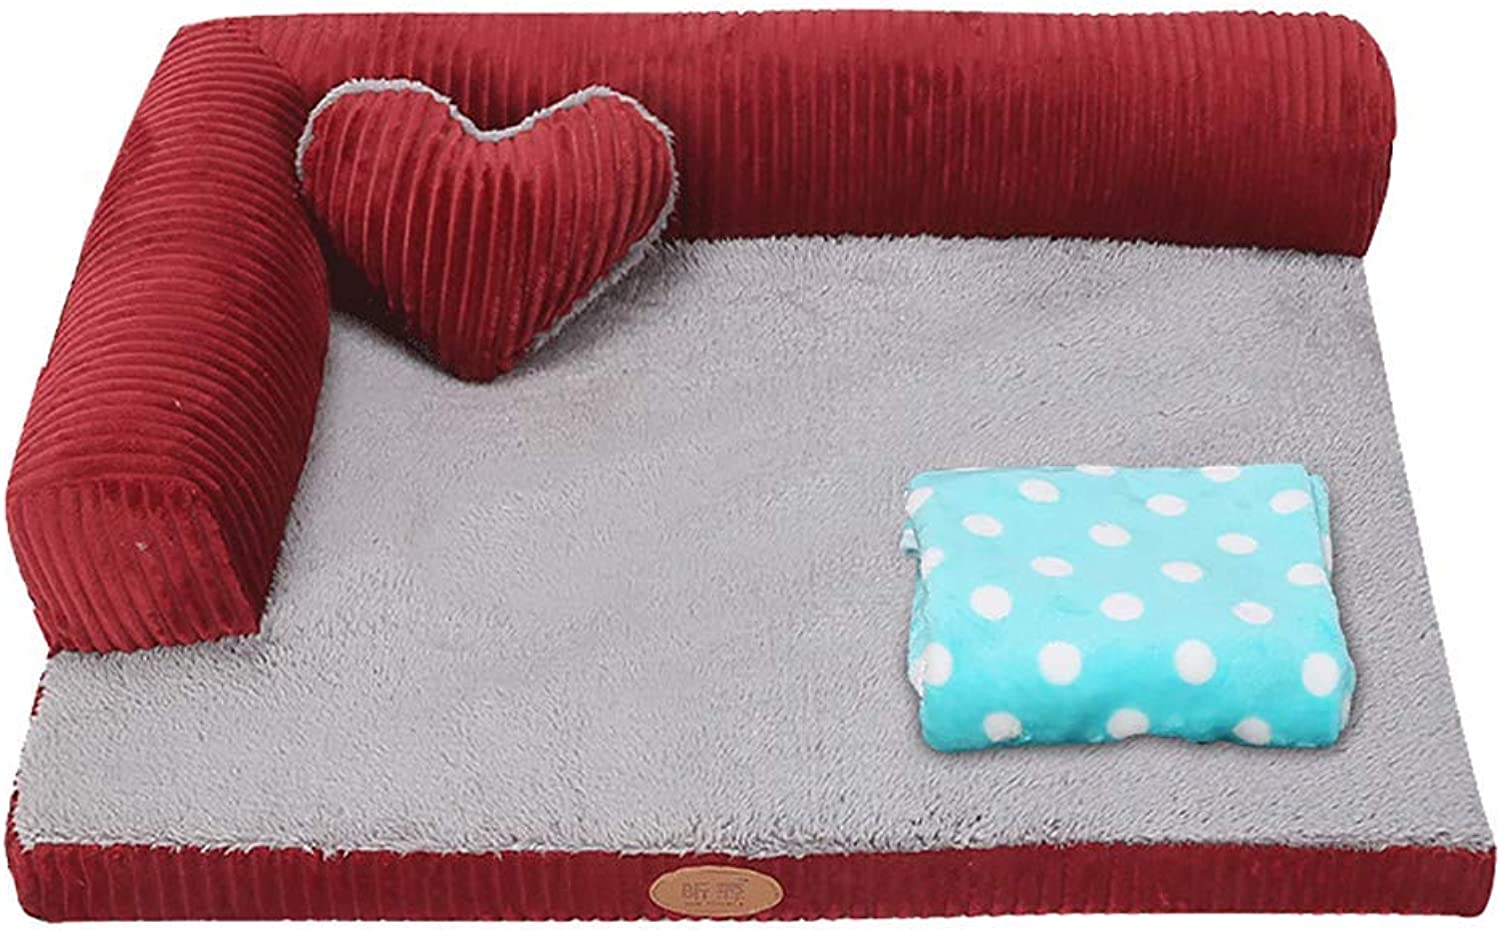 Pet Bed Memory Sponge Pet Bed Sofa House for Dog Cat,Washable Covers,Durable Oxford Fabric, Kennel Available in All Seasons (color   3)